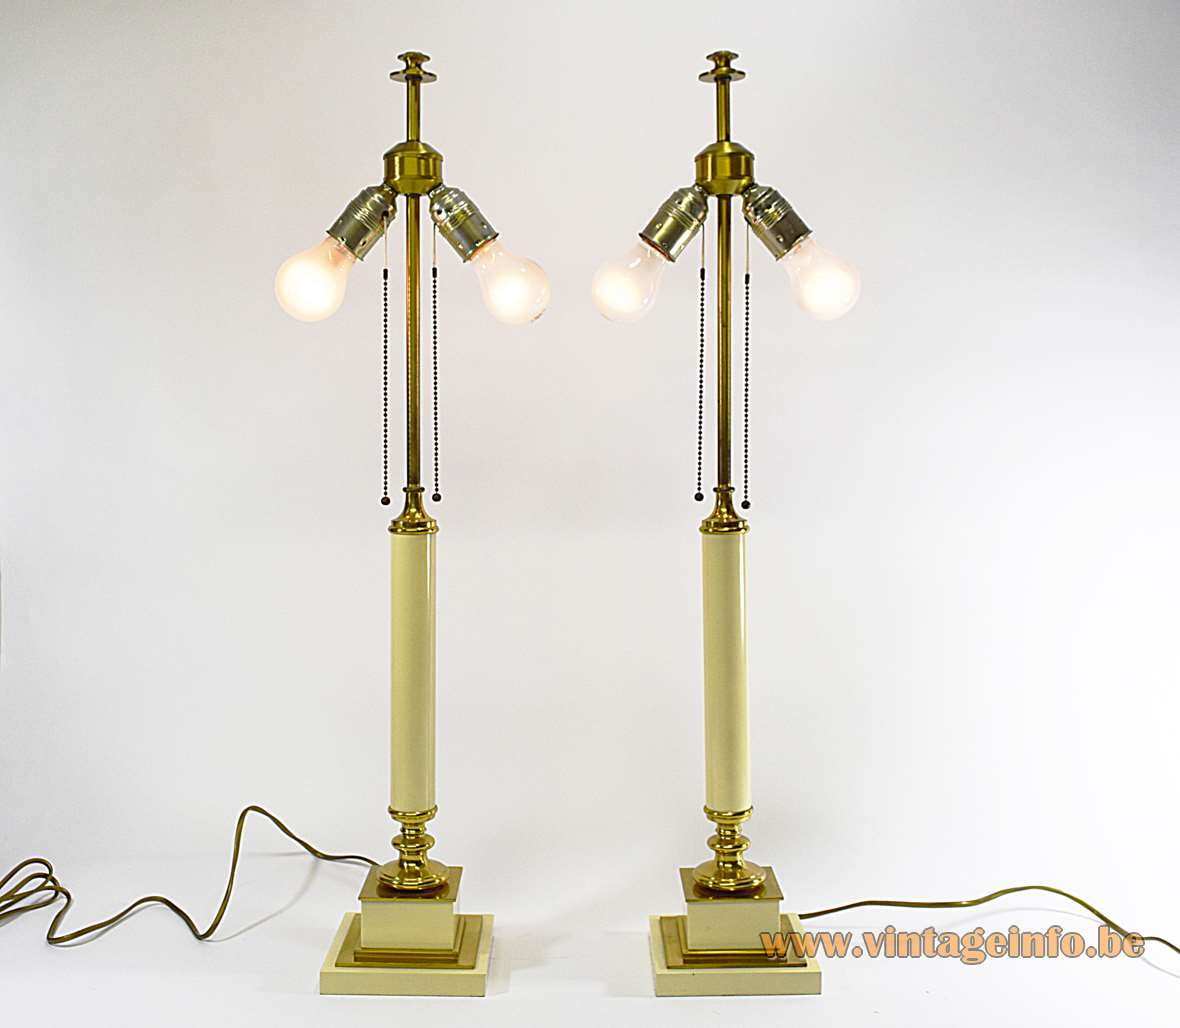 Neoclassical Table Lamps Square base brass parts vanilla/cream painted wood round cardboard lampshades 1970s 1980s